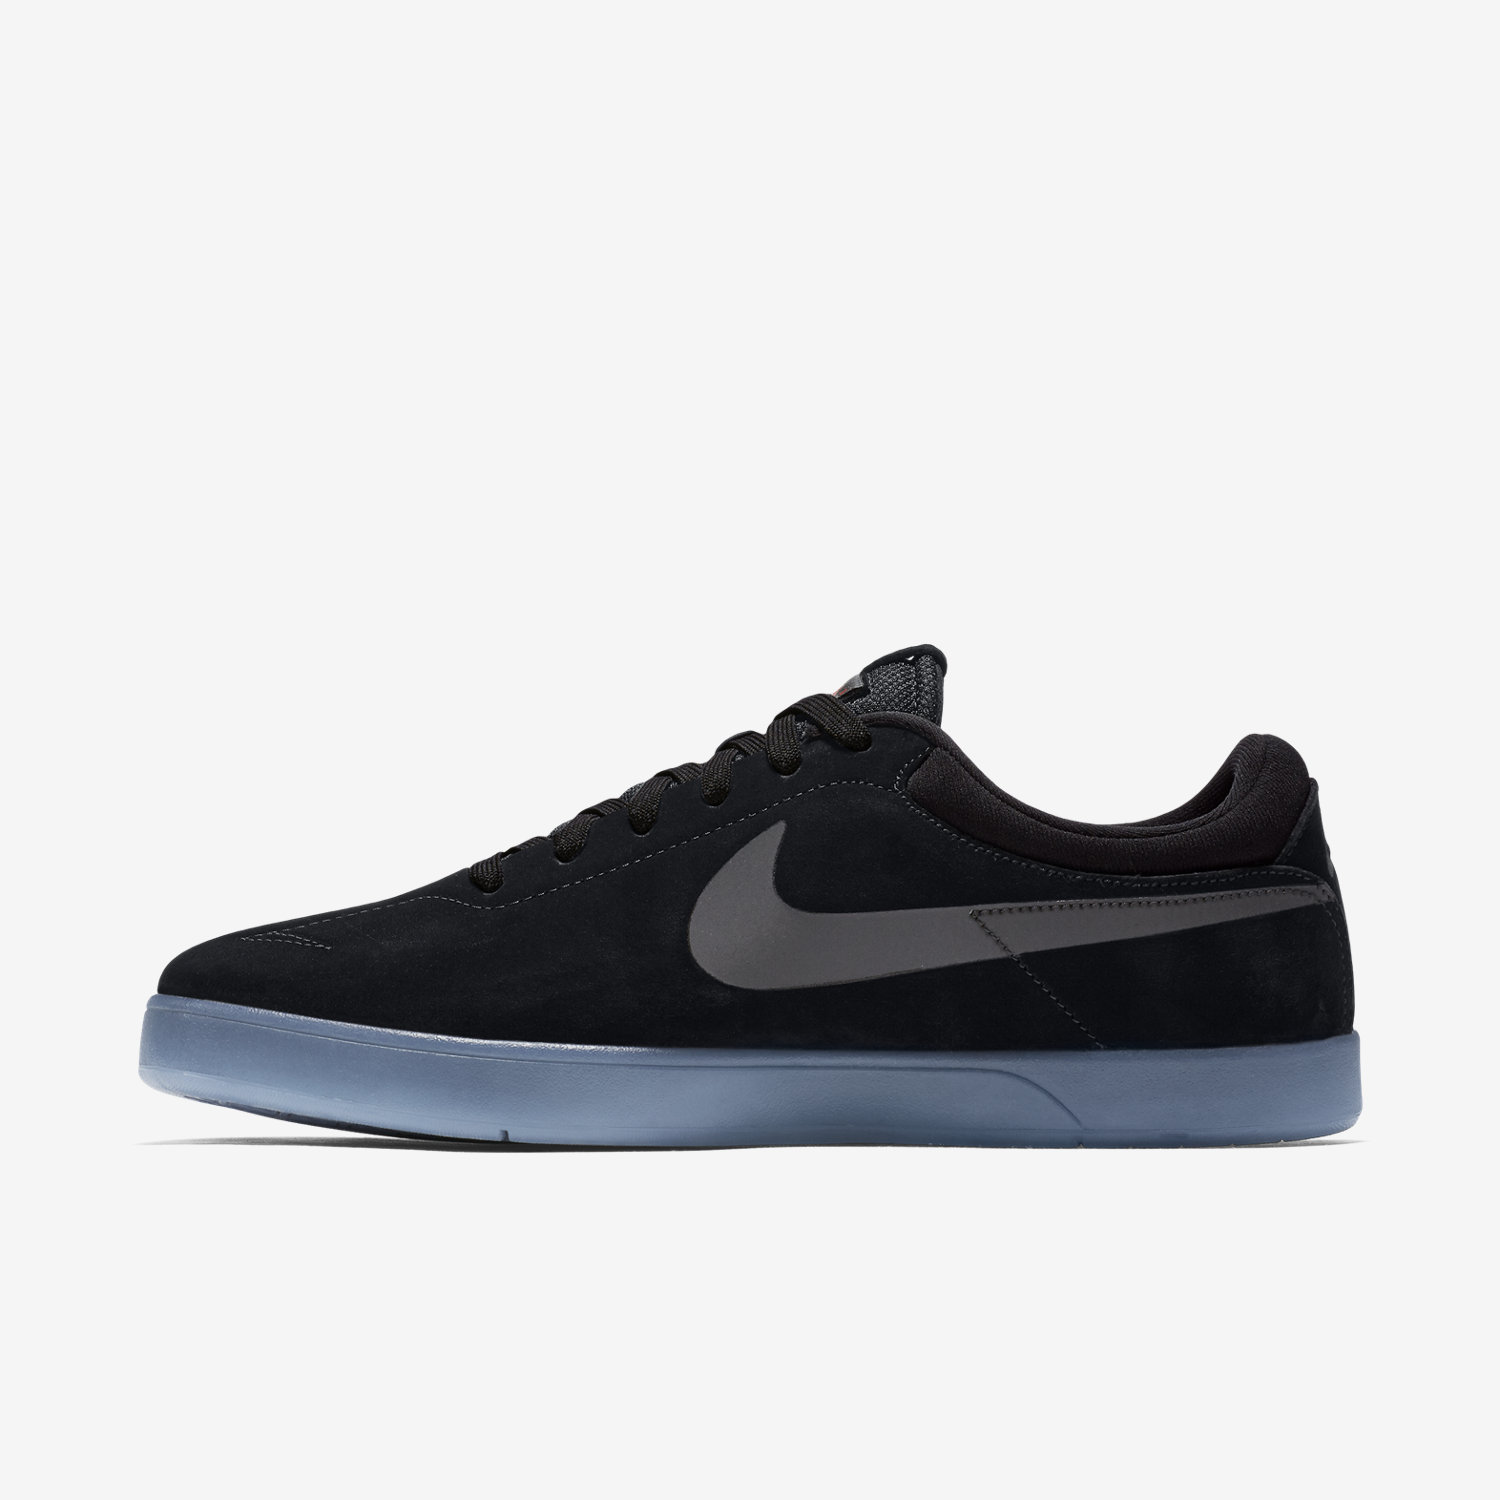 Koston Shoes For Sale